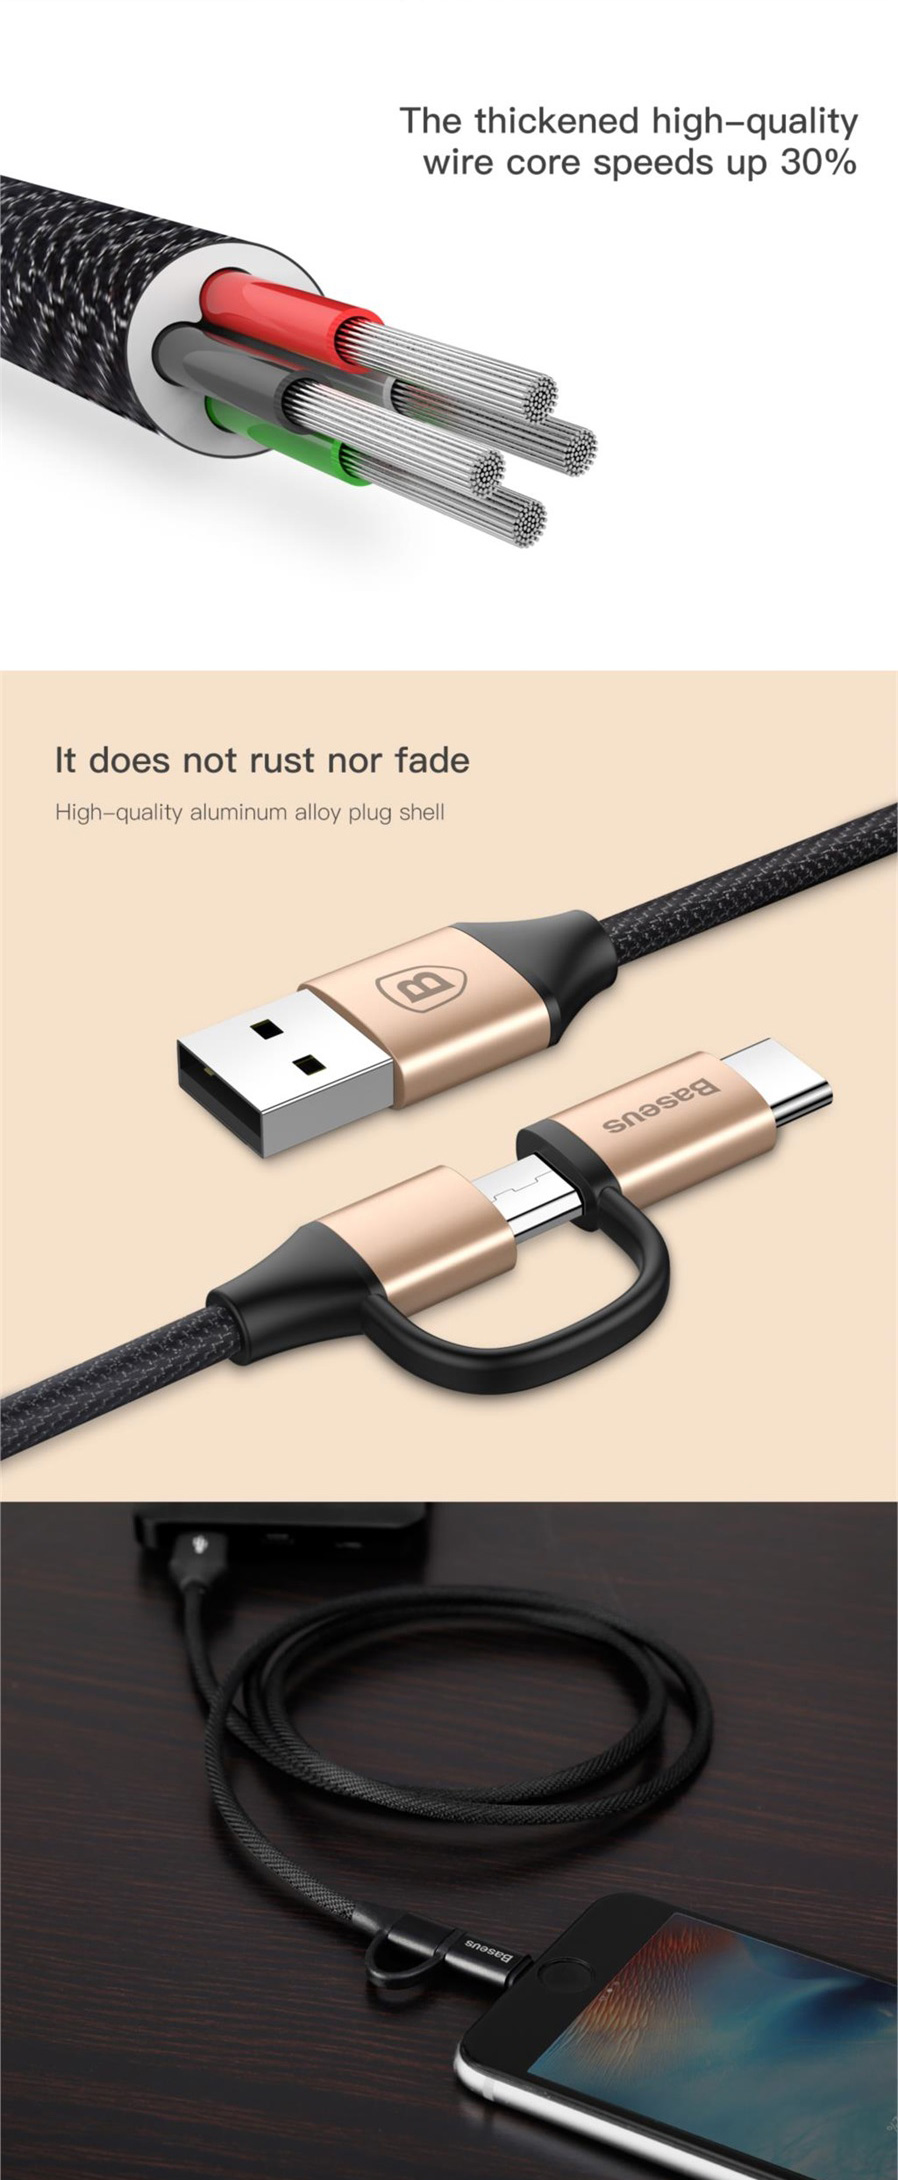 Baseus Yiven Micro Usb Type C Data Transmission Charging Cable Kabel 2 In 1 Charge Ampamp For Iphone And Android 100cm General